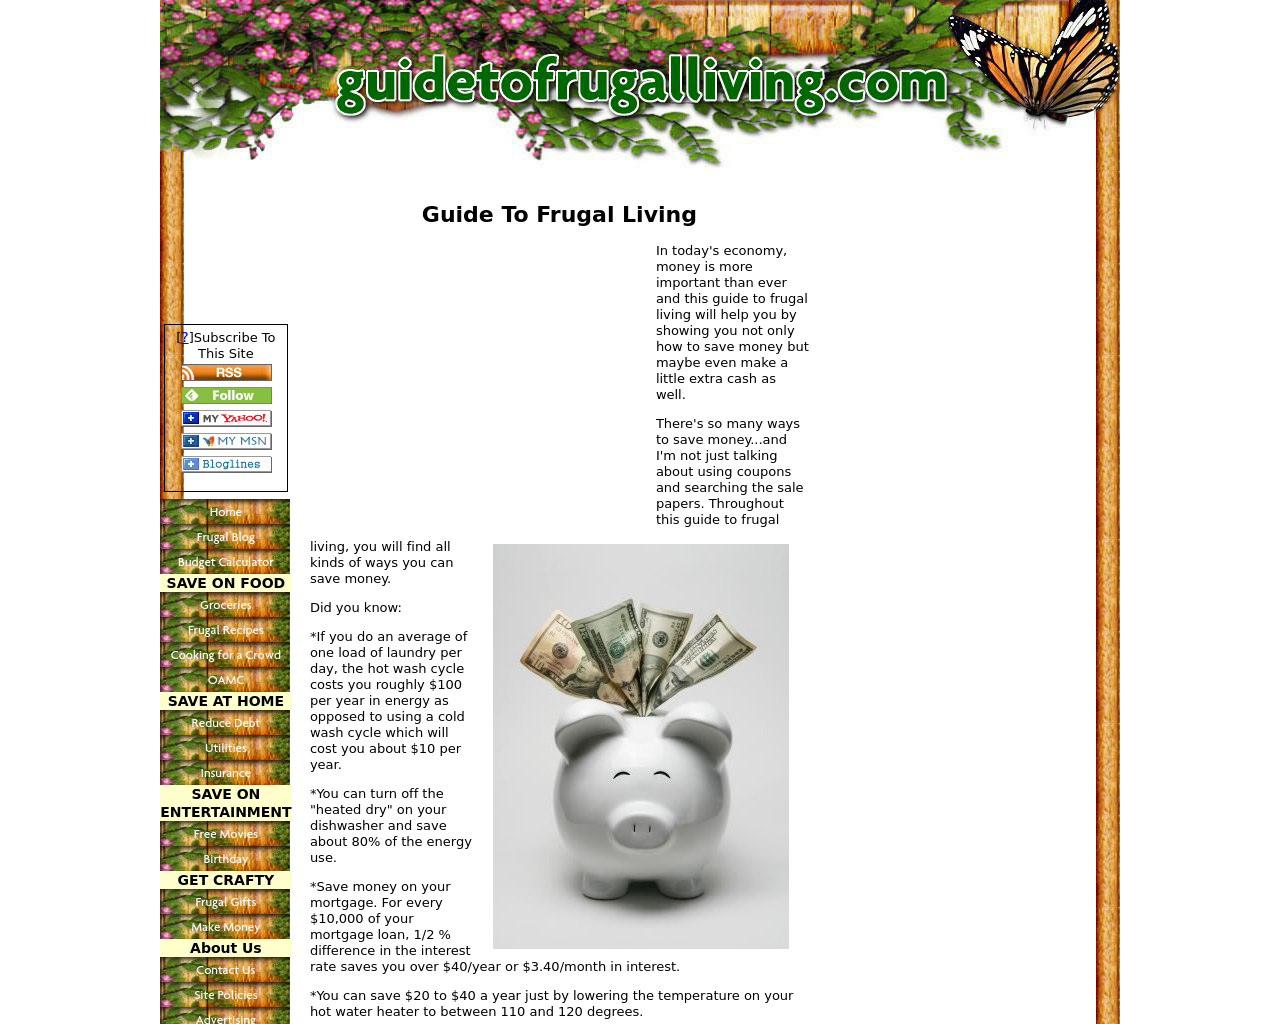 Guide-To-Frugal-Living-Advertising-Reviews-Pricing